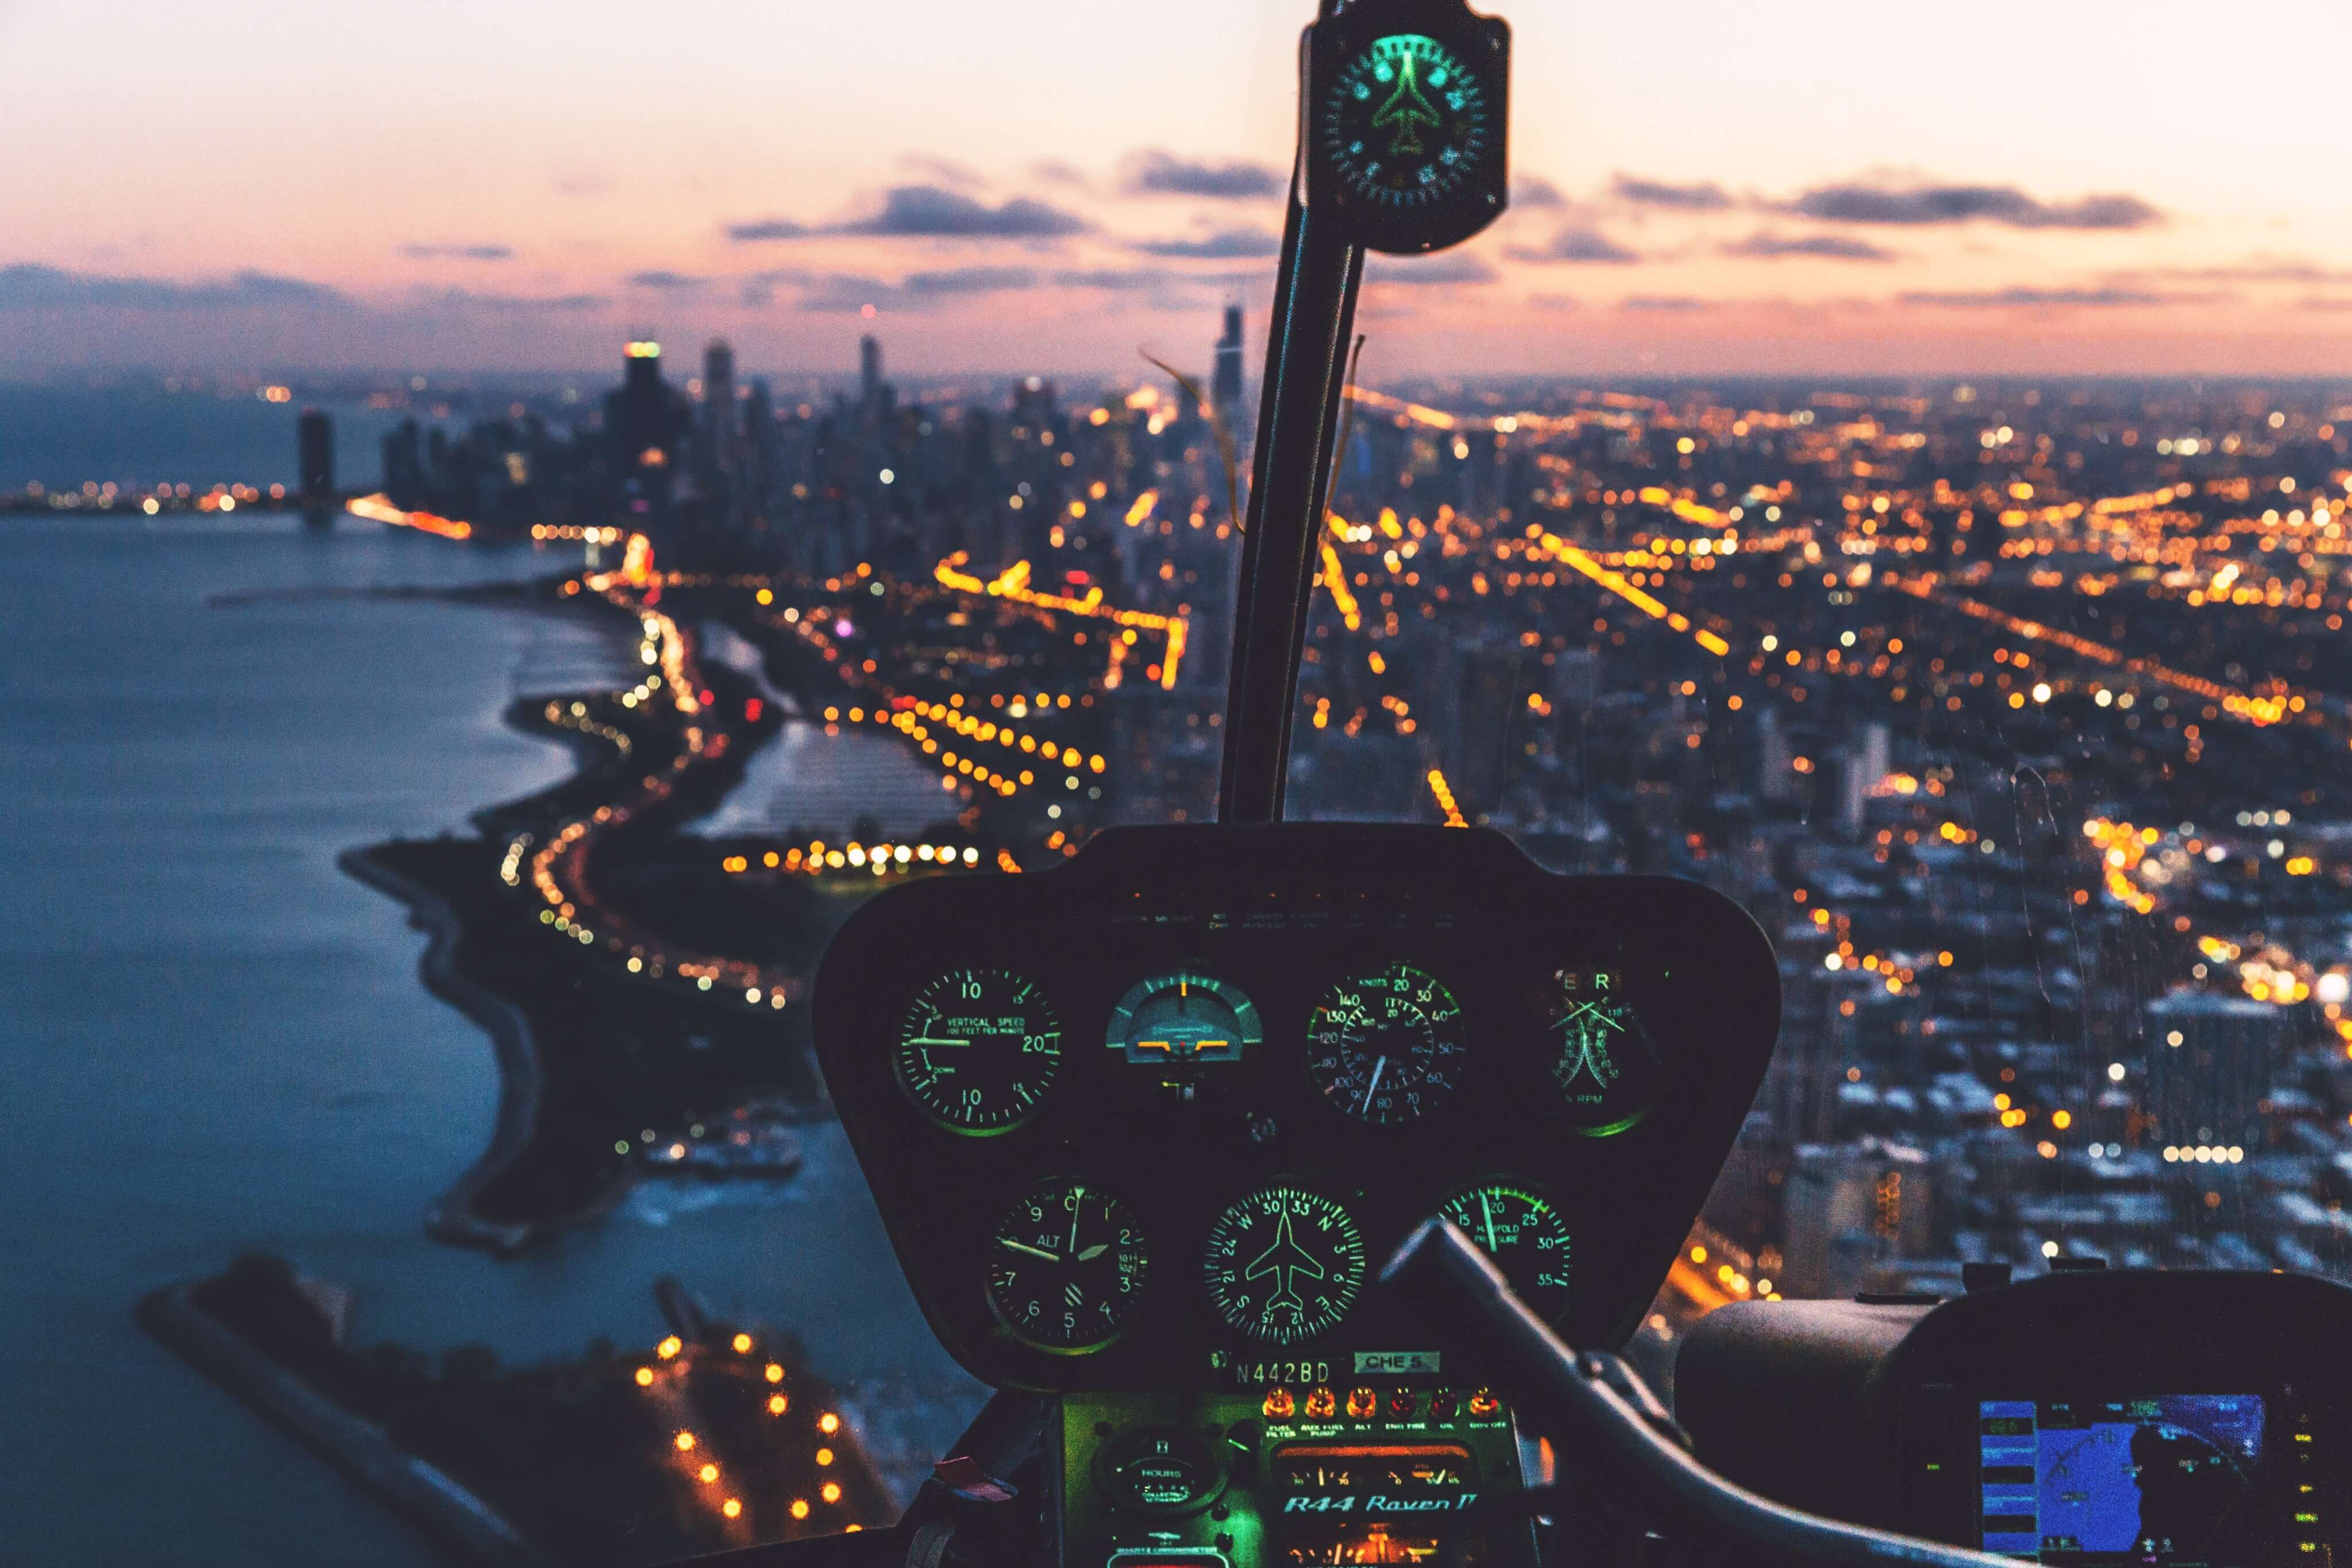 view from helicopter cockpit over city lights